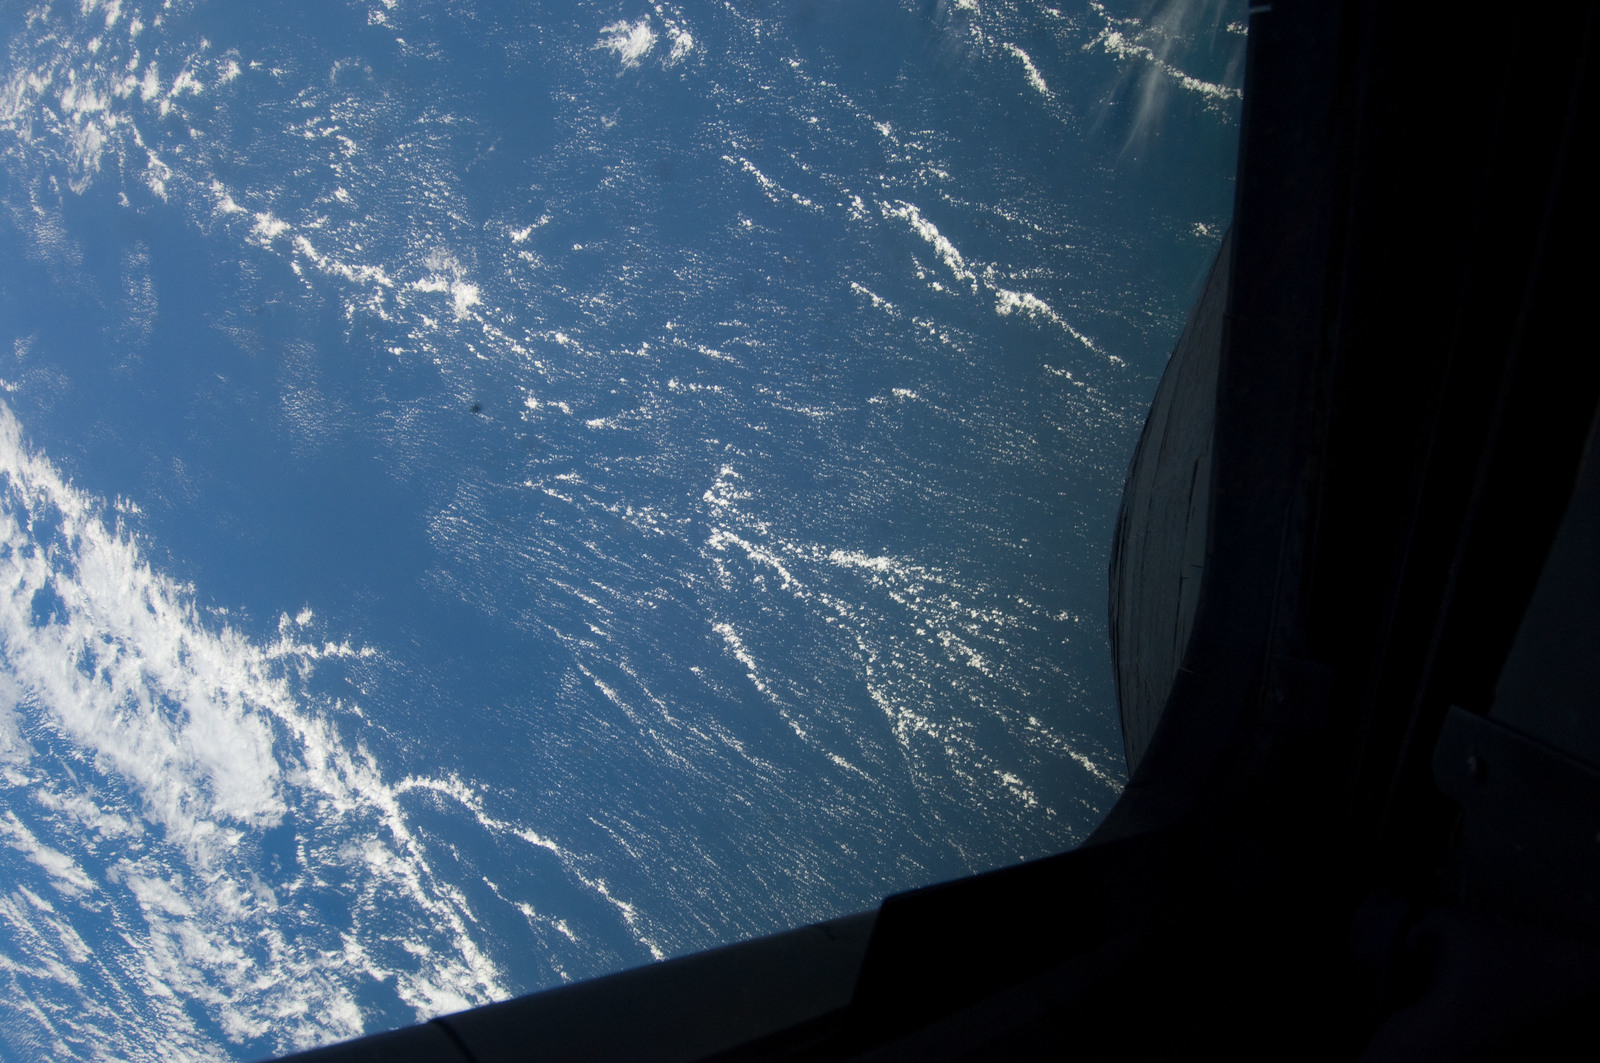 s133E006933 - STS-133 - Earth Observation taken by the STS-133 crew